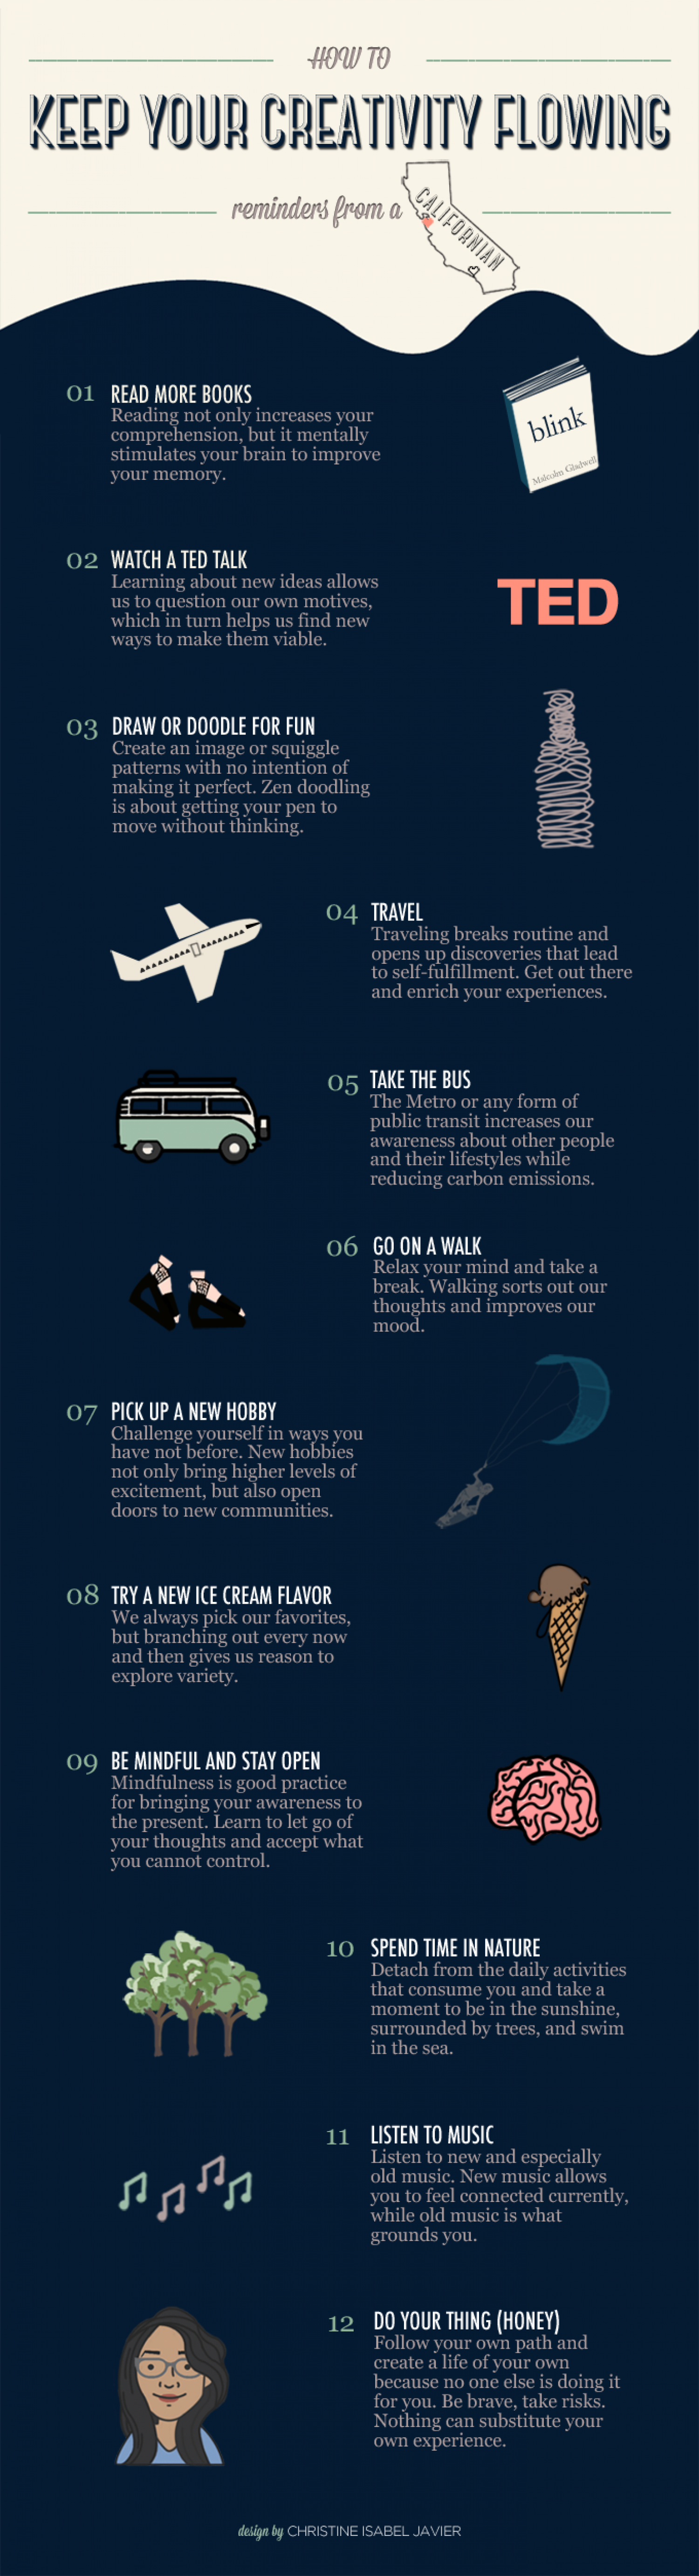 How To Keep Your Creativity Flowing Infographic